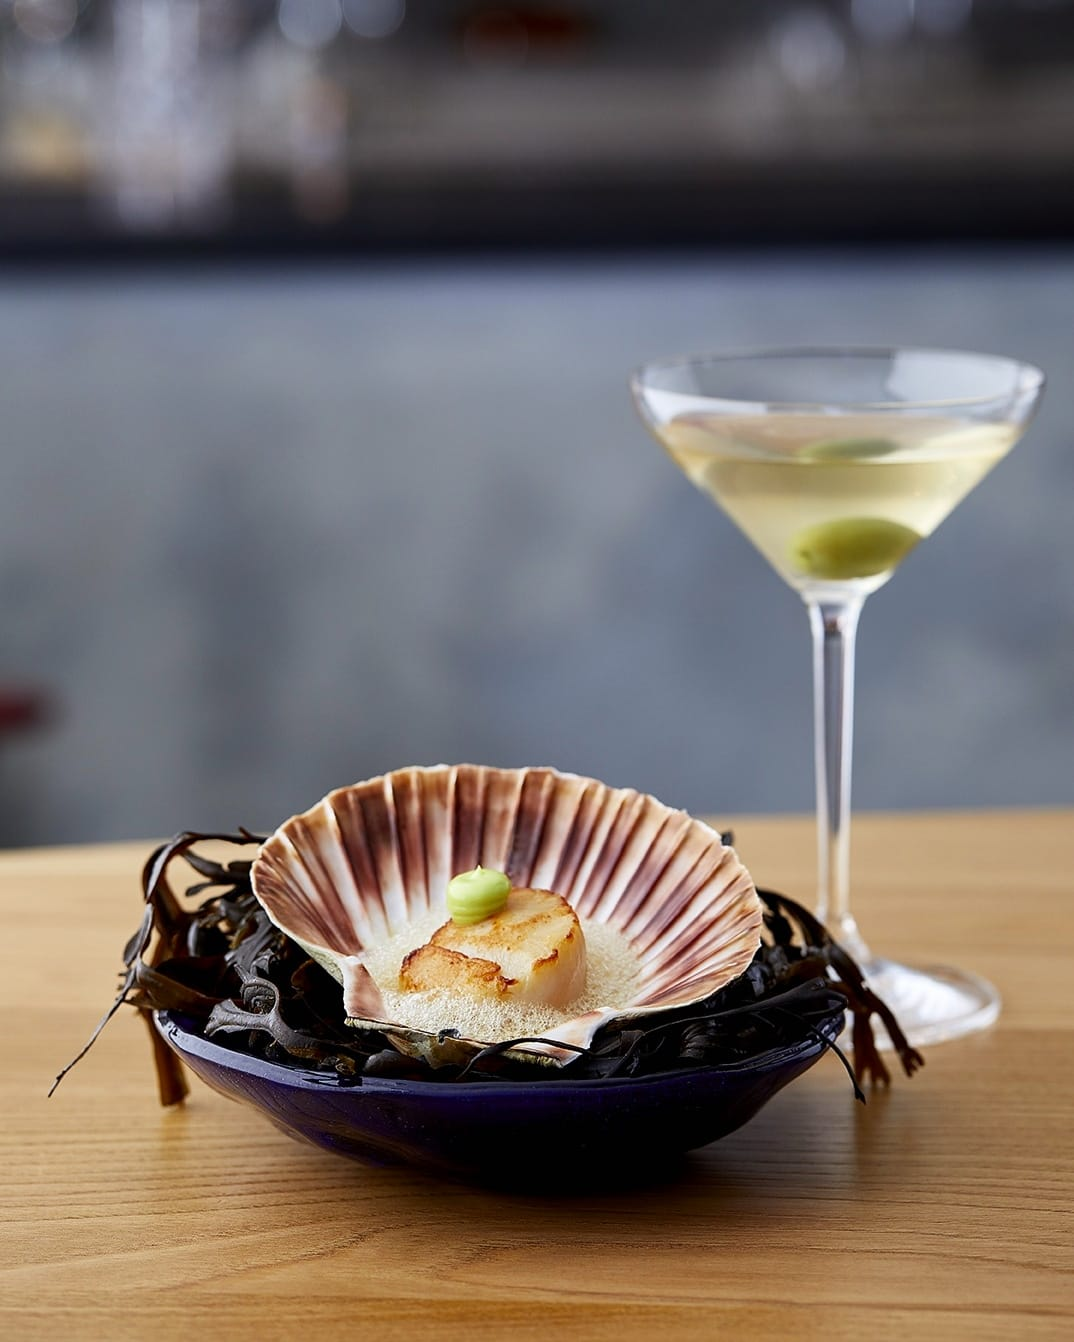 Scallops and martinis in the sophisticated lobby bar of One Aldwych